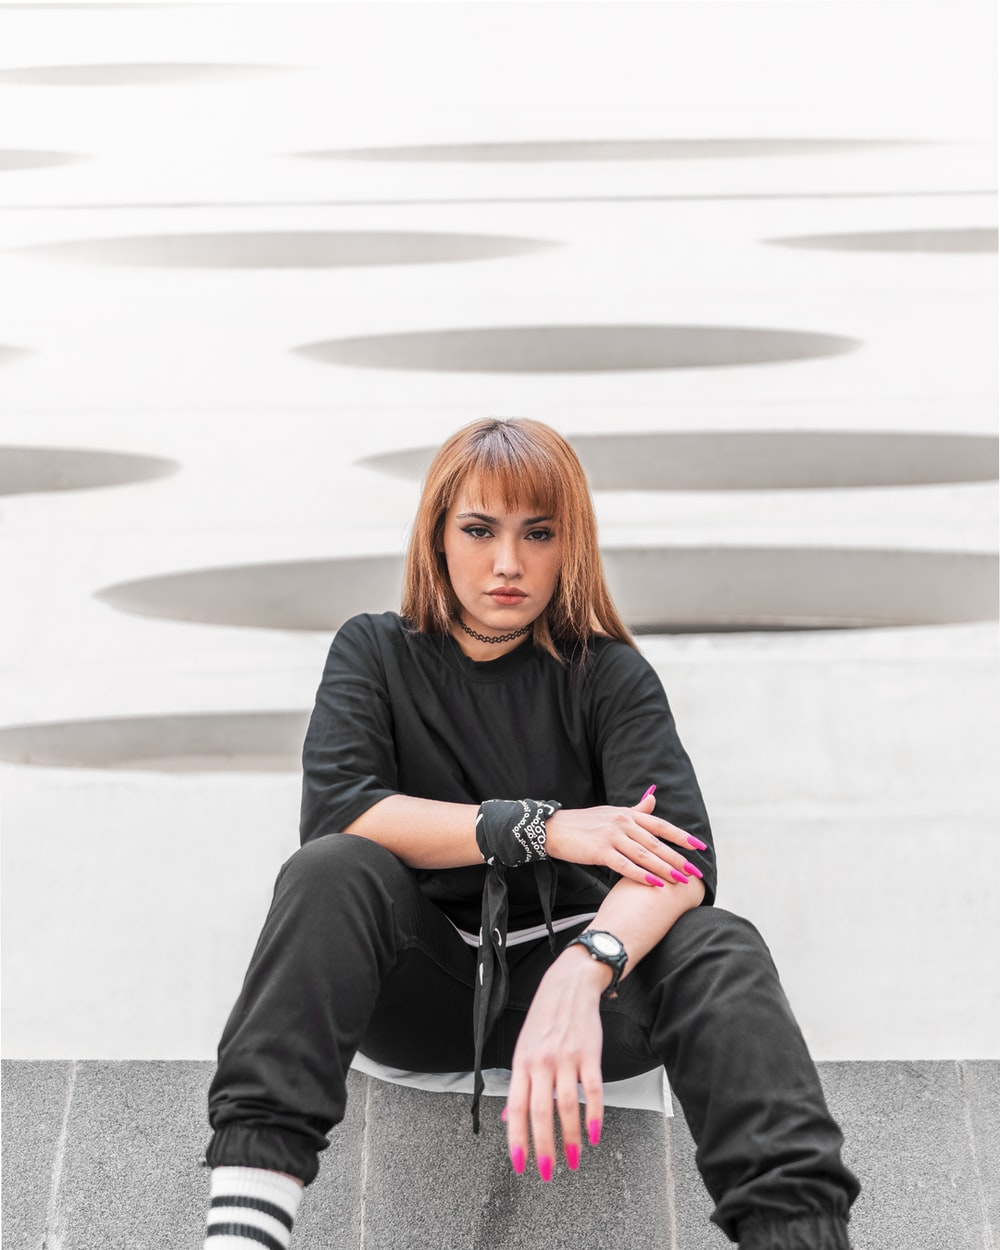 woman in black long sleeve shirt sitting on gray concrete stairs